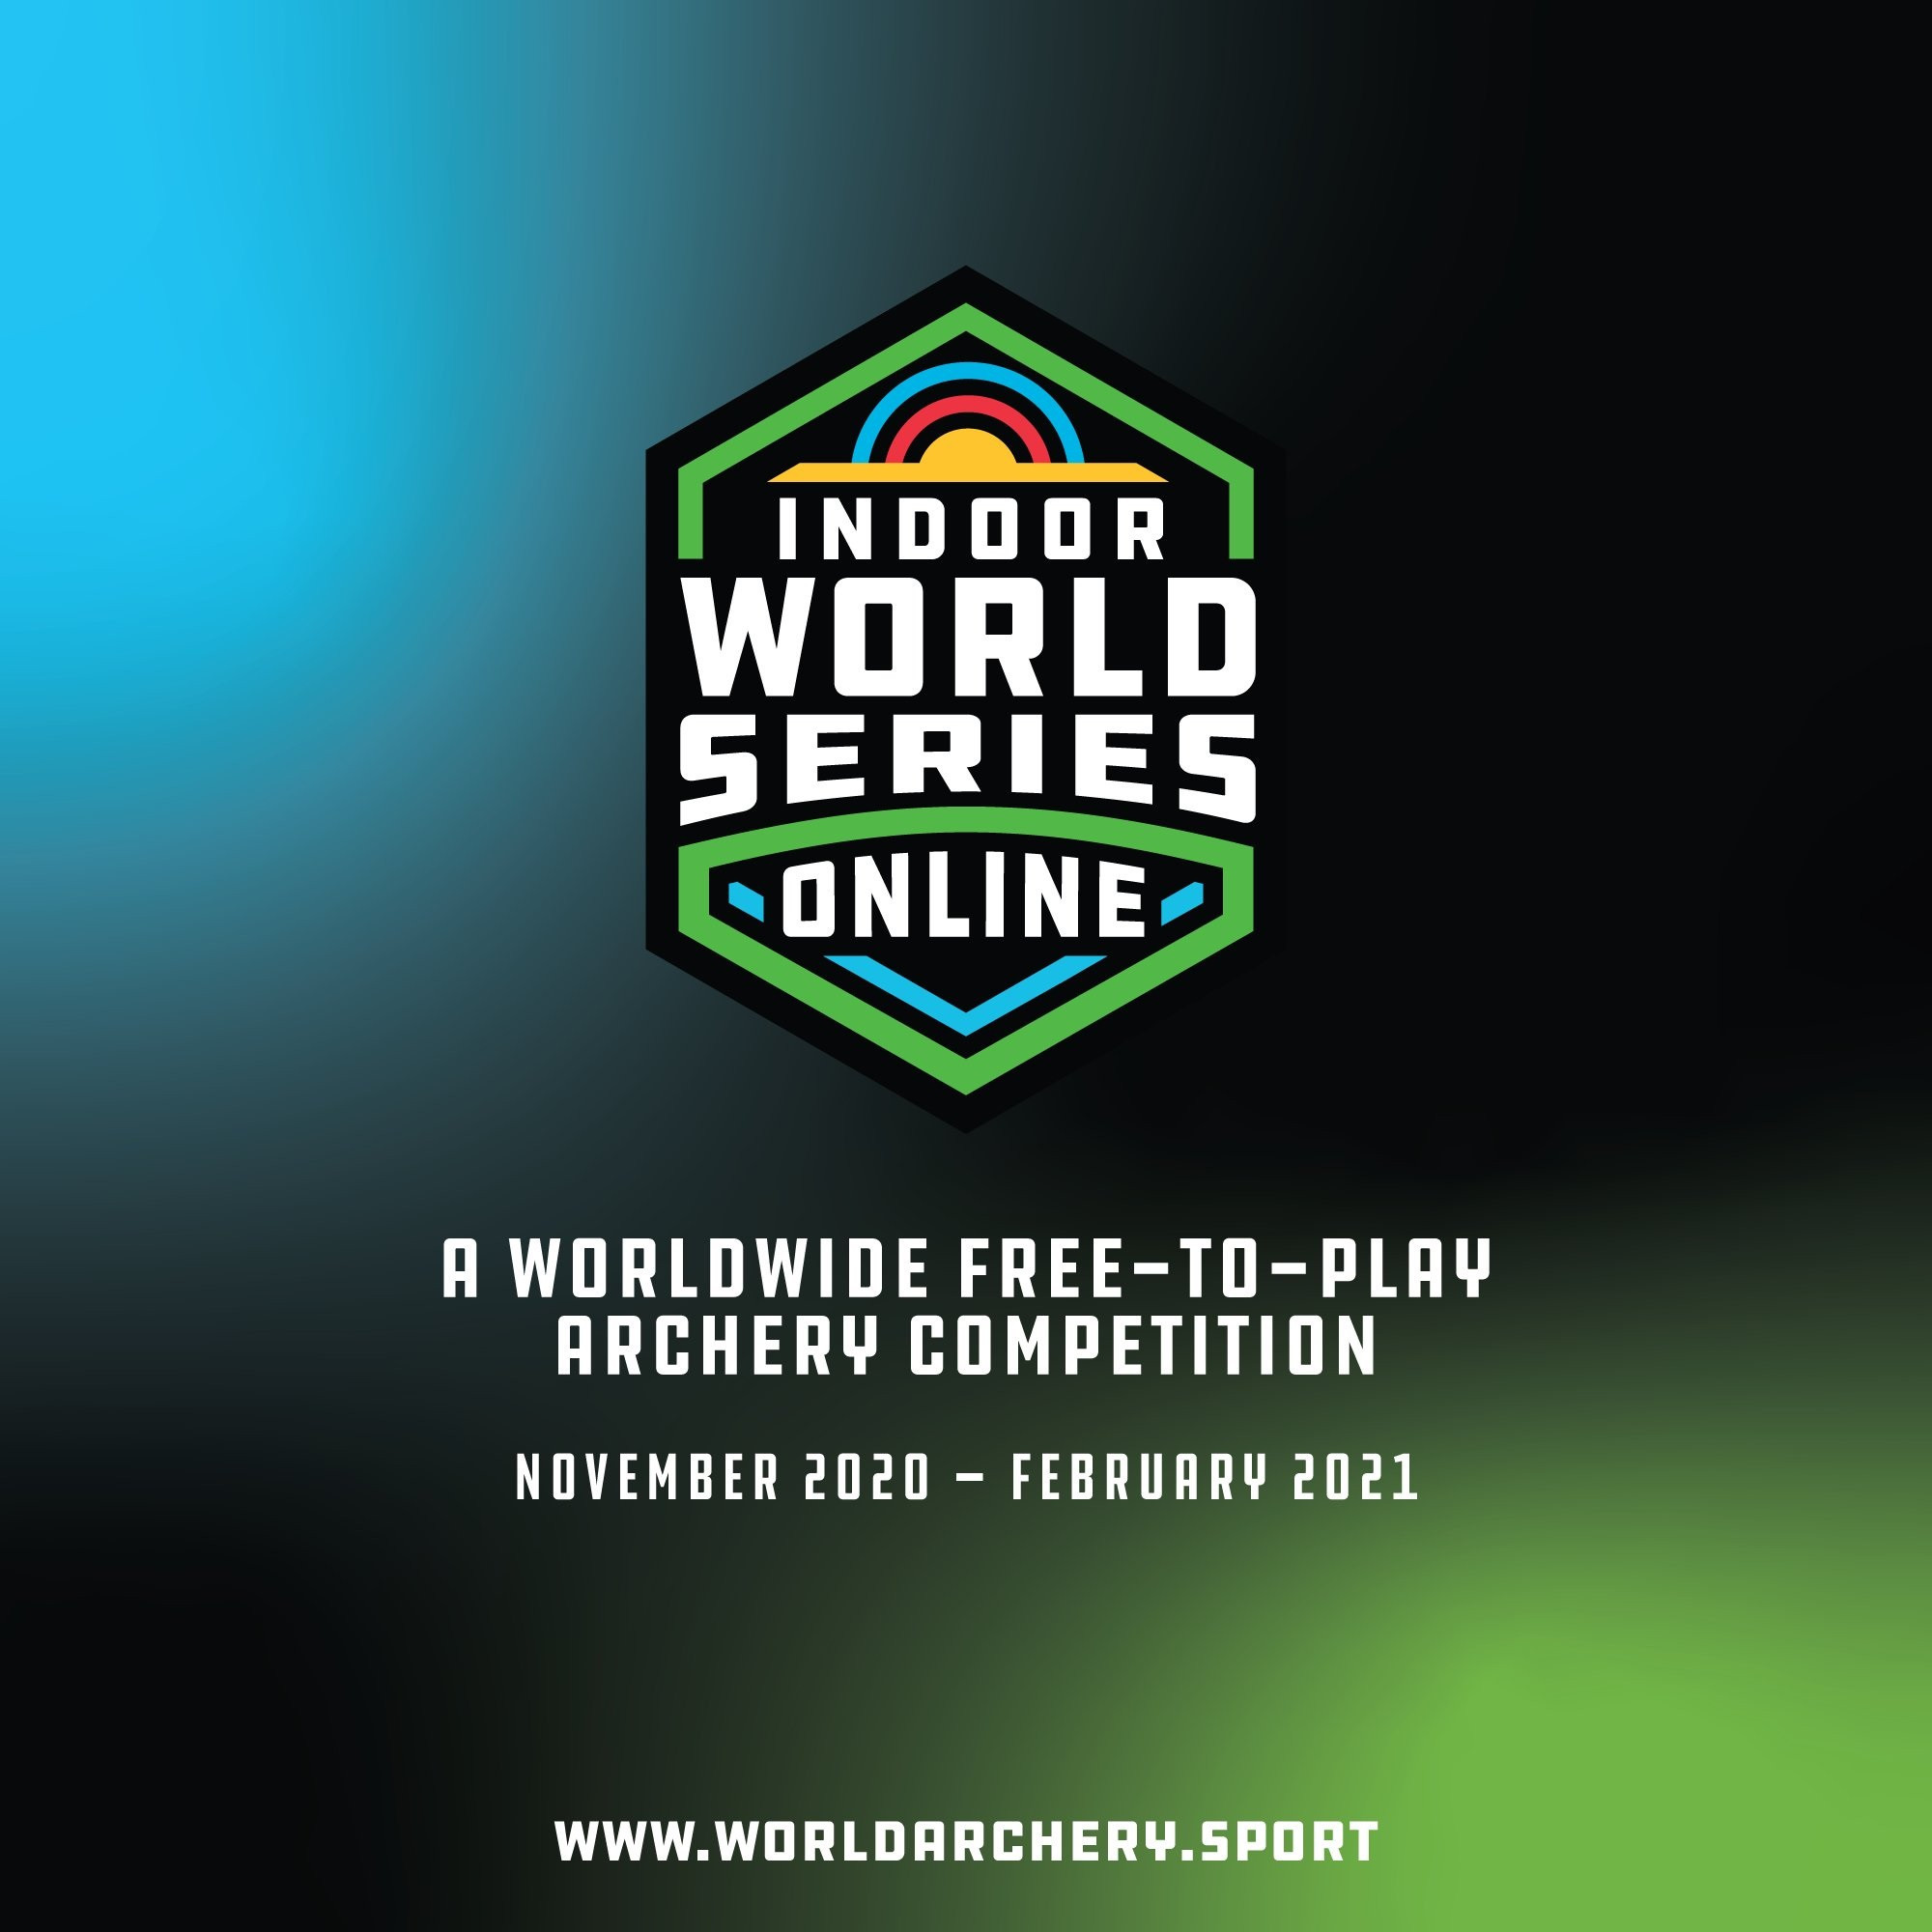 World Archery has announced the 2021 Indoor Archery World Series will be held virtually ©World Archery